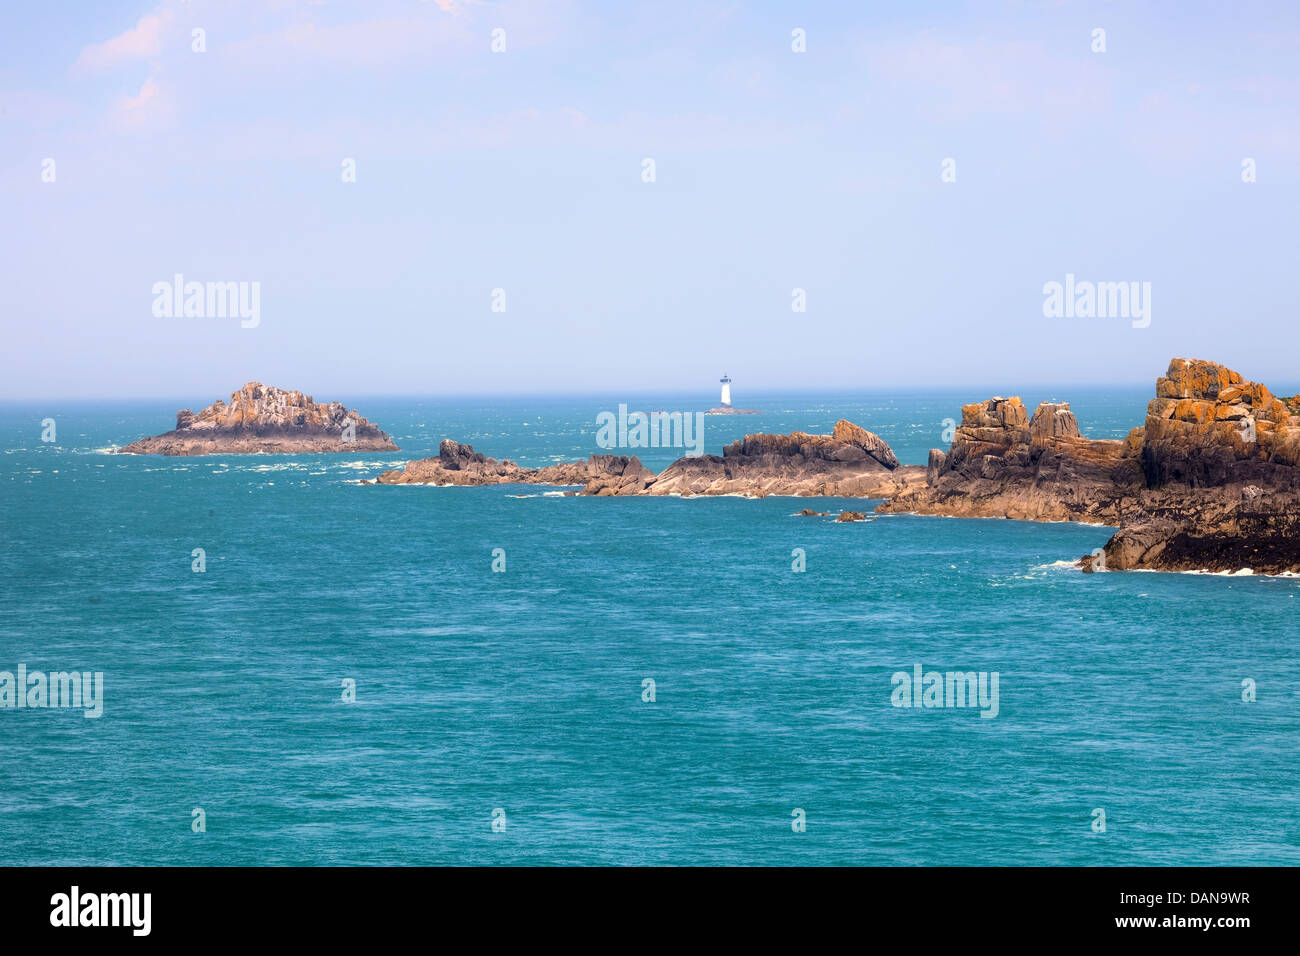 Pointe du Grouin, Cancale, Brittany, France - Stock Image